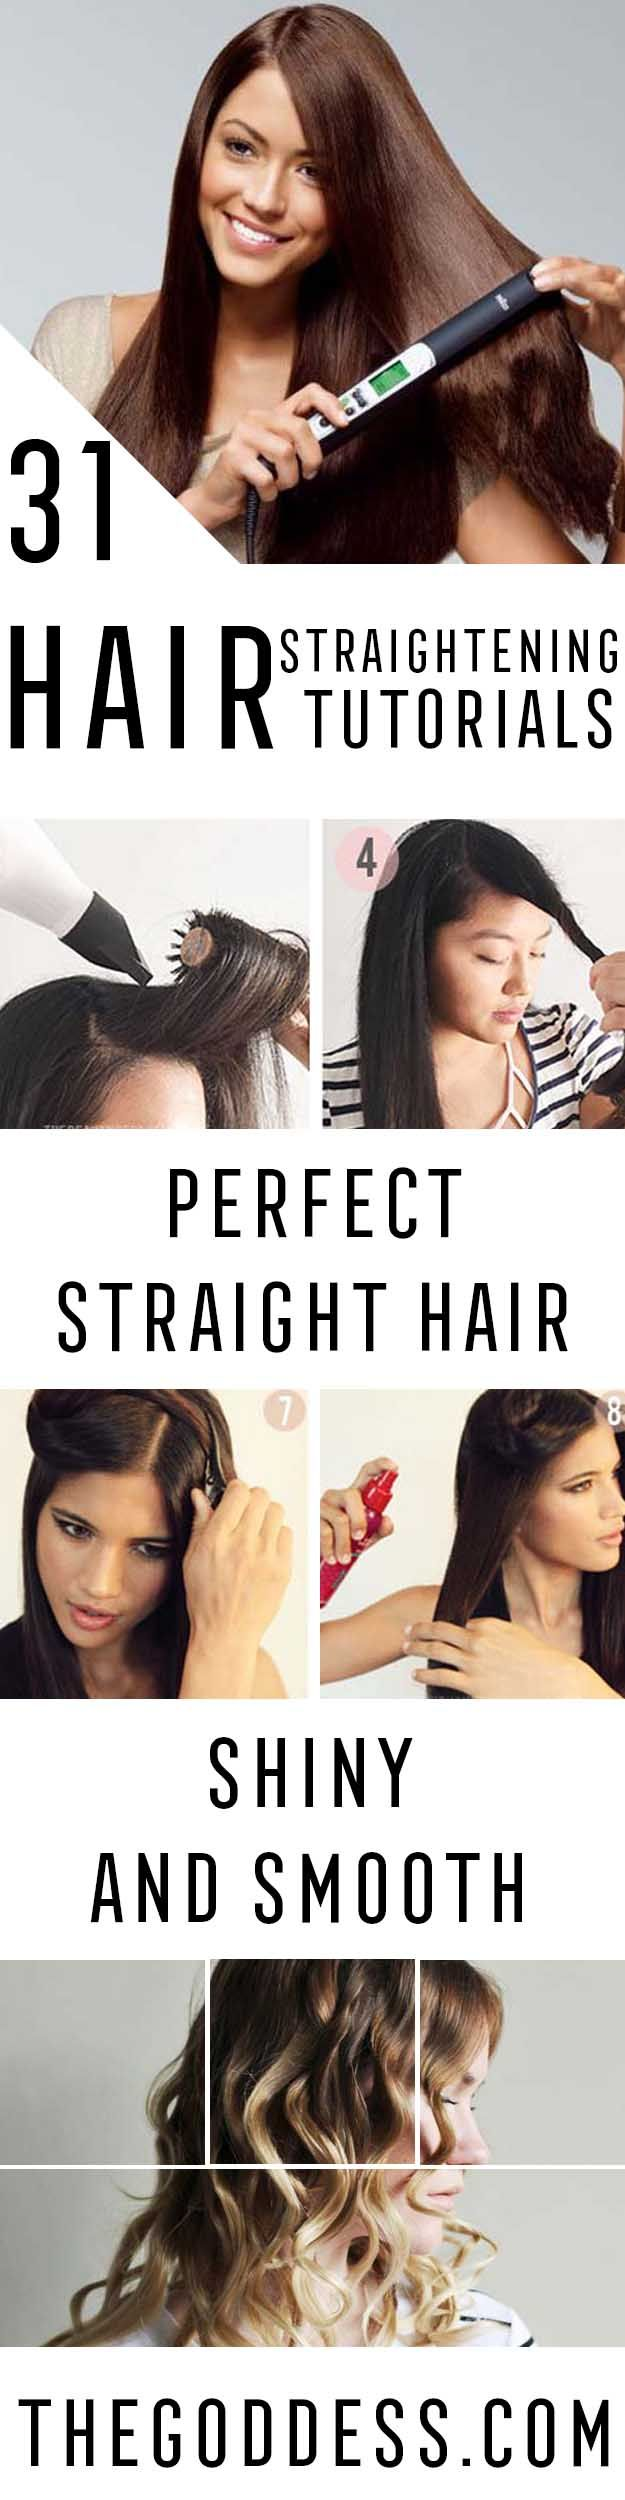 Hair Straightening Tutorials - Looking For The Best Hair Straightening Tutorials...